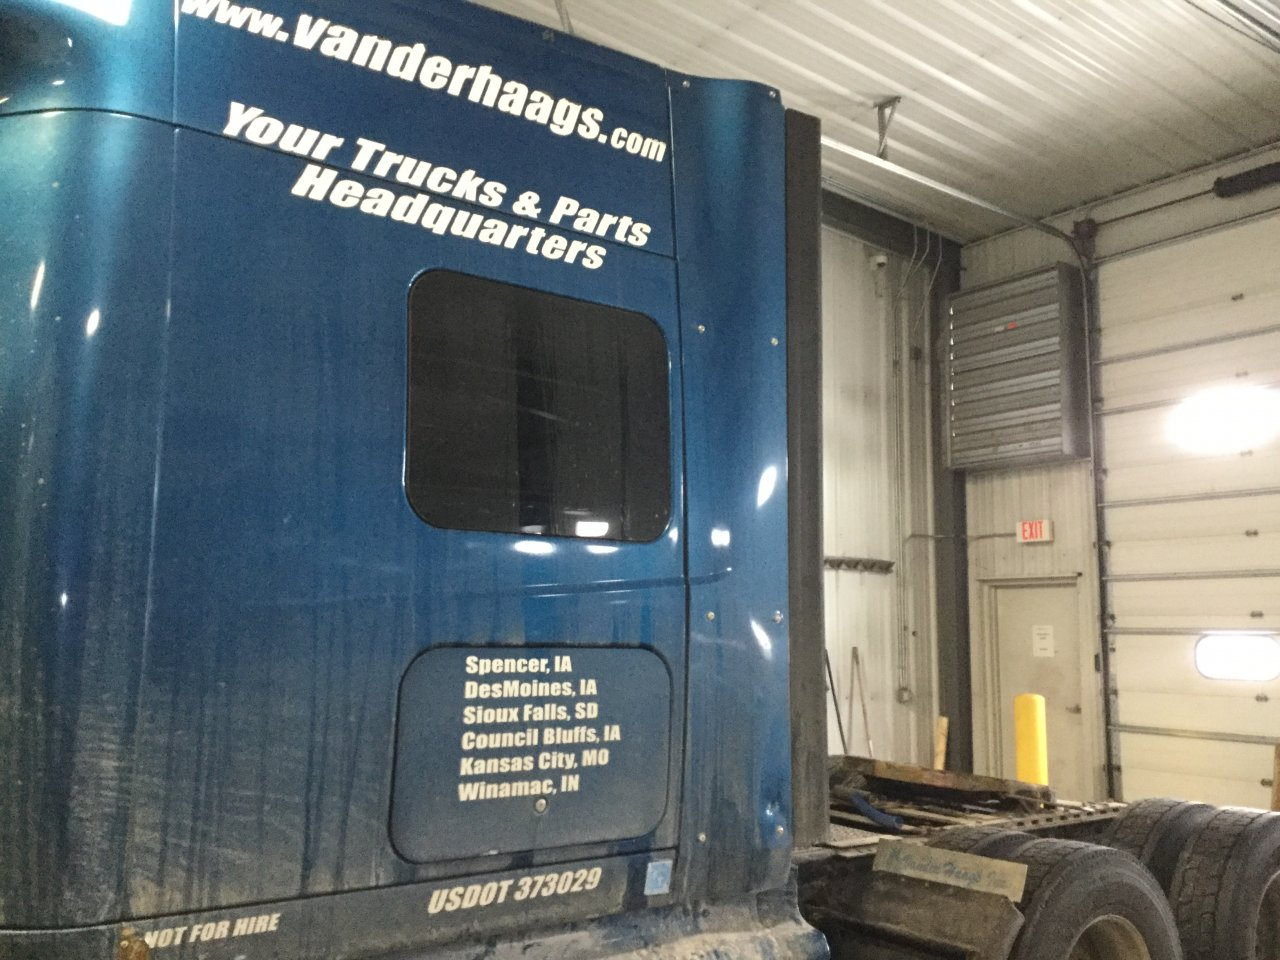 International PROSTAR For Sale | VanderHaags com